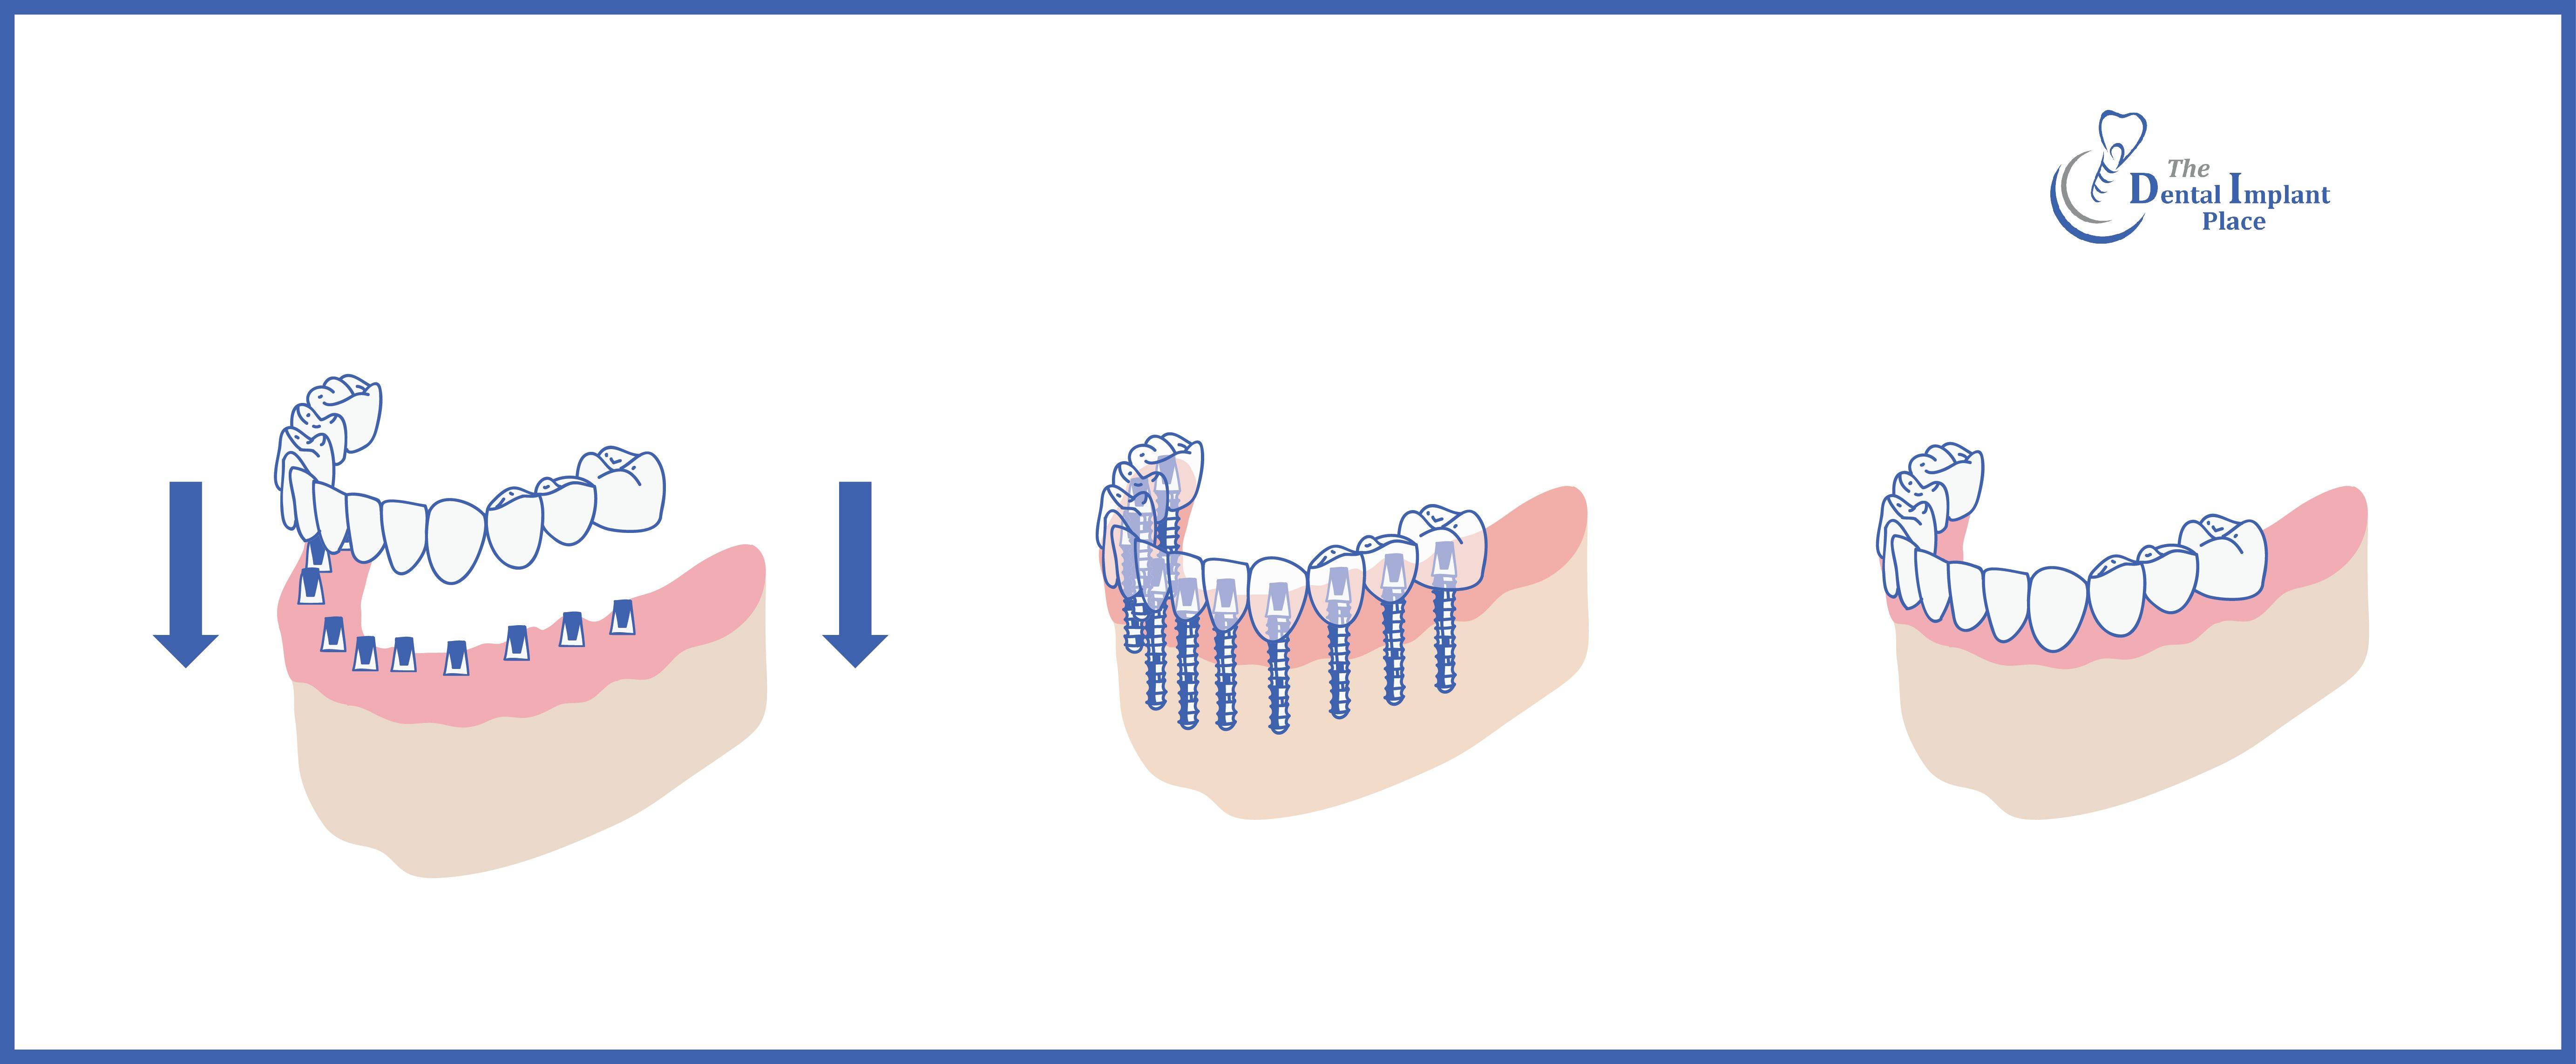 Here's a great picture of what full arch dental implants are!